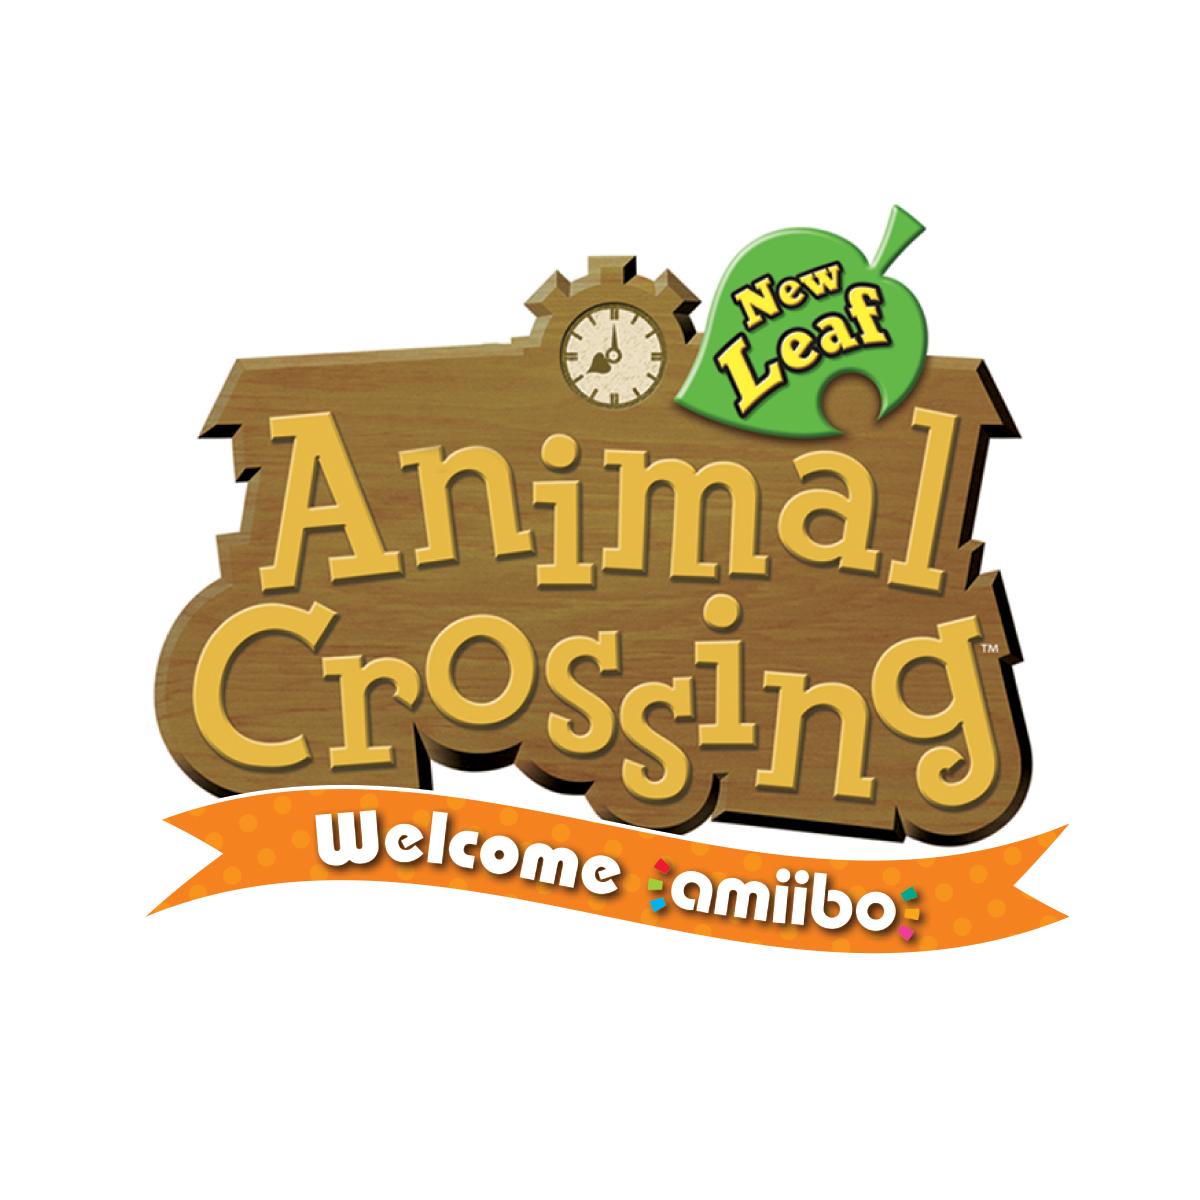 Animal crossing new leaf full update pr and details for Animal crossing new leaf arredamento